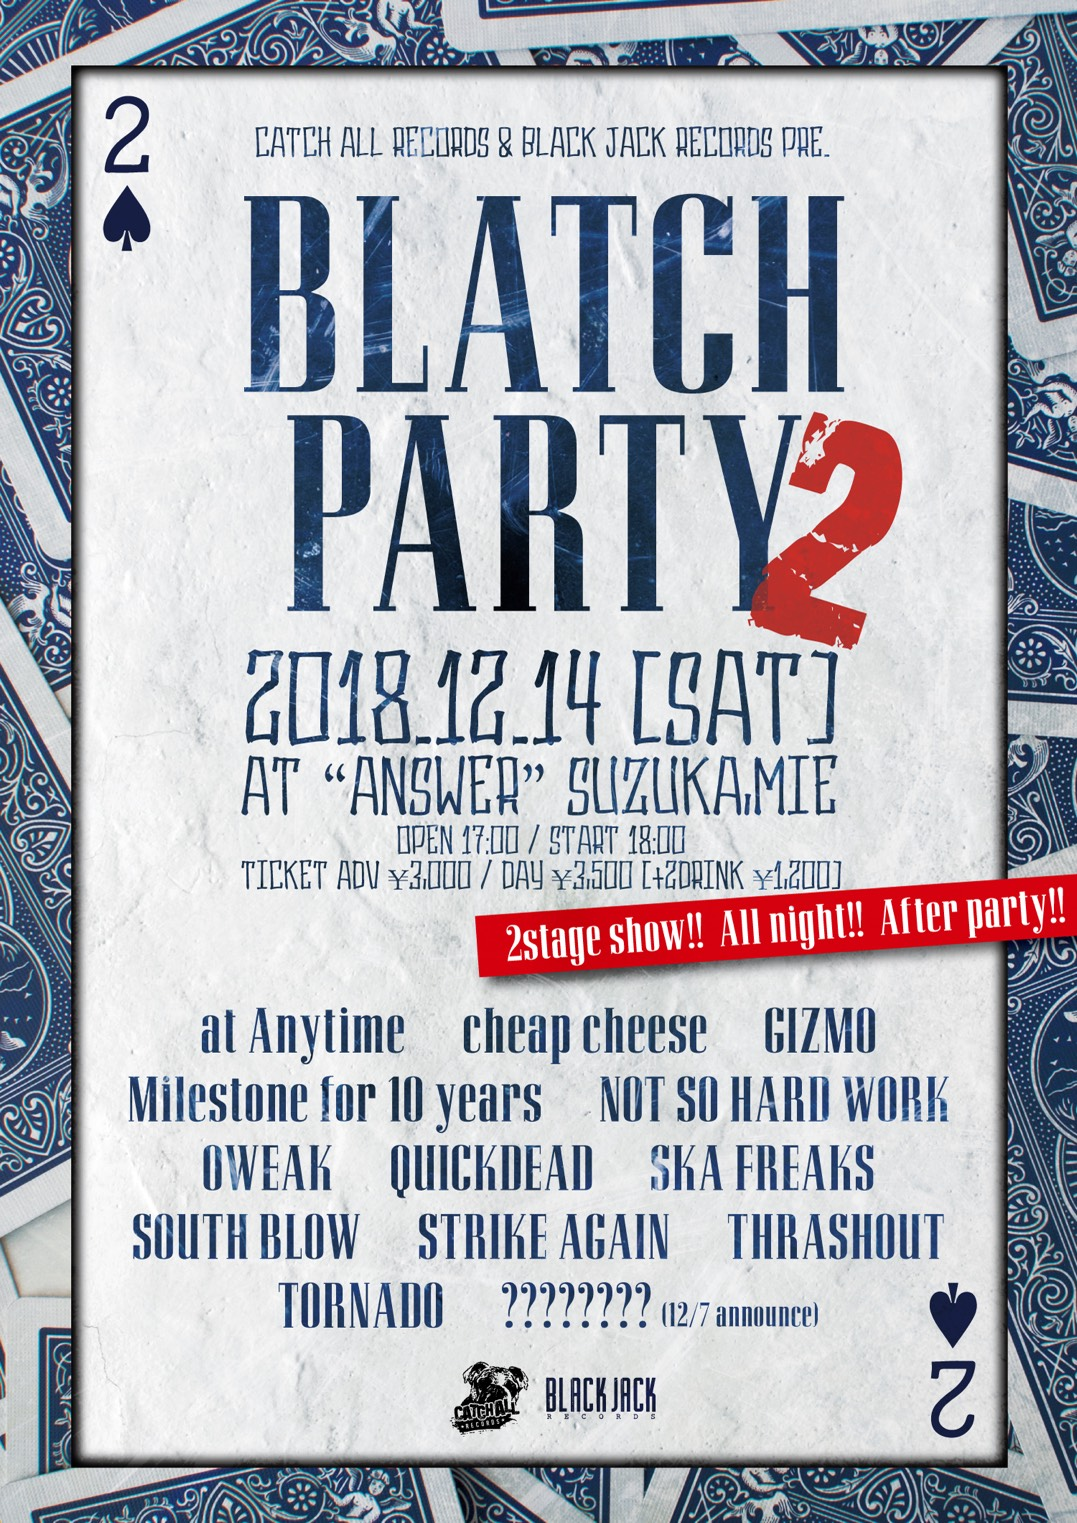 BLATCH PARTY 2